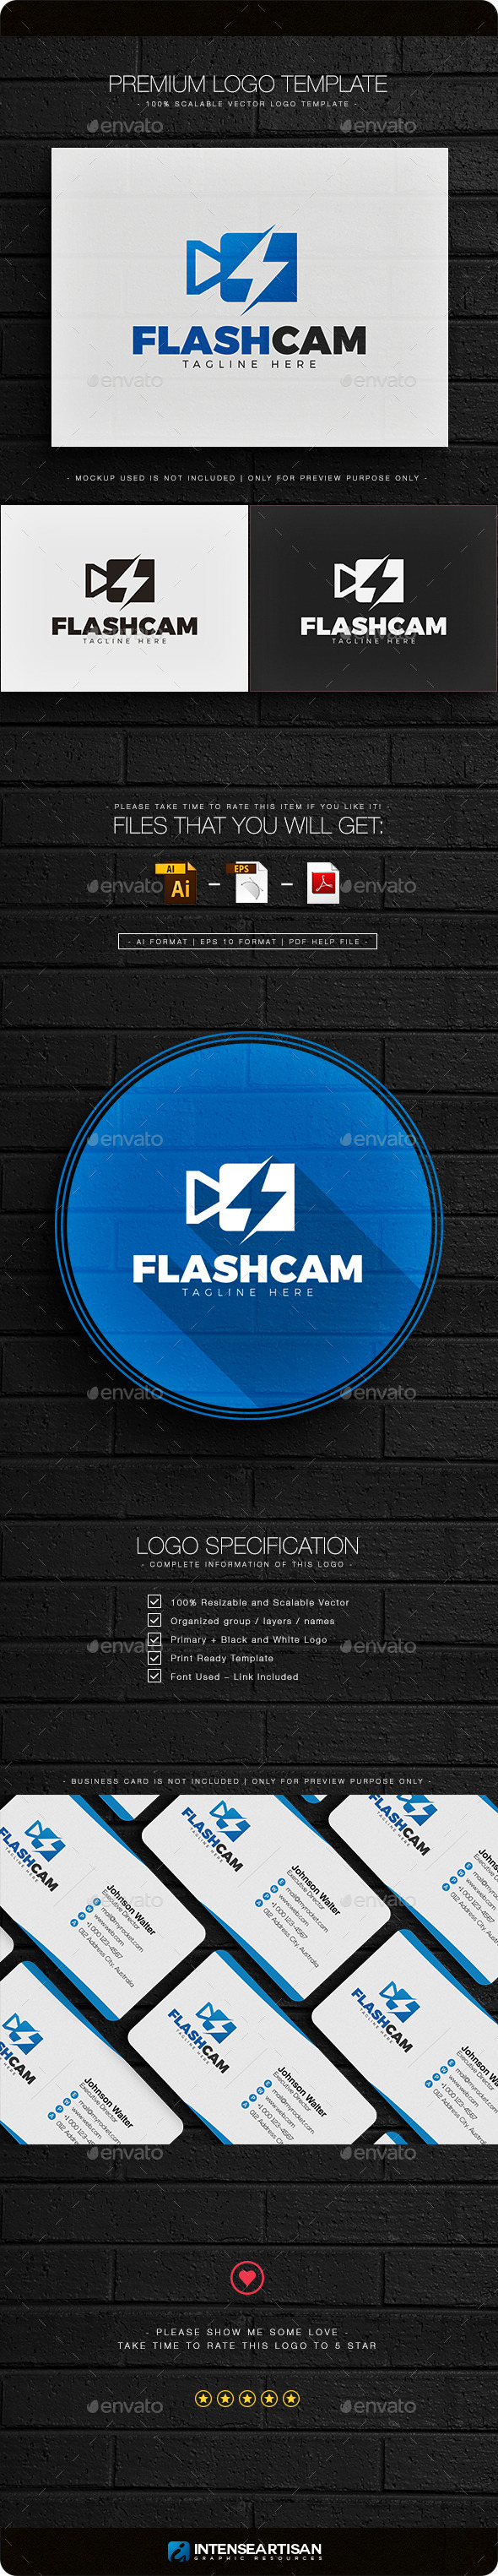 Flash Camera Logo - Objects Logo Templates